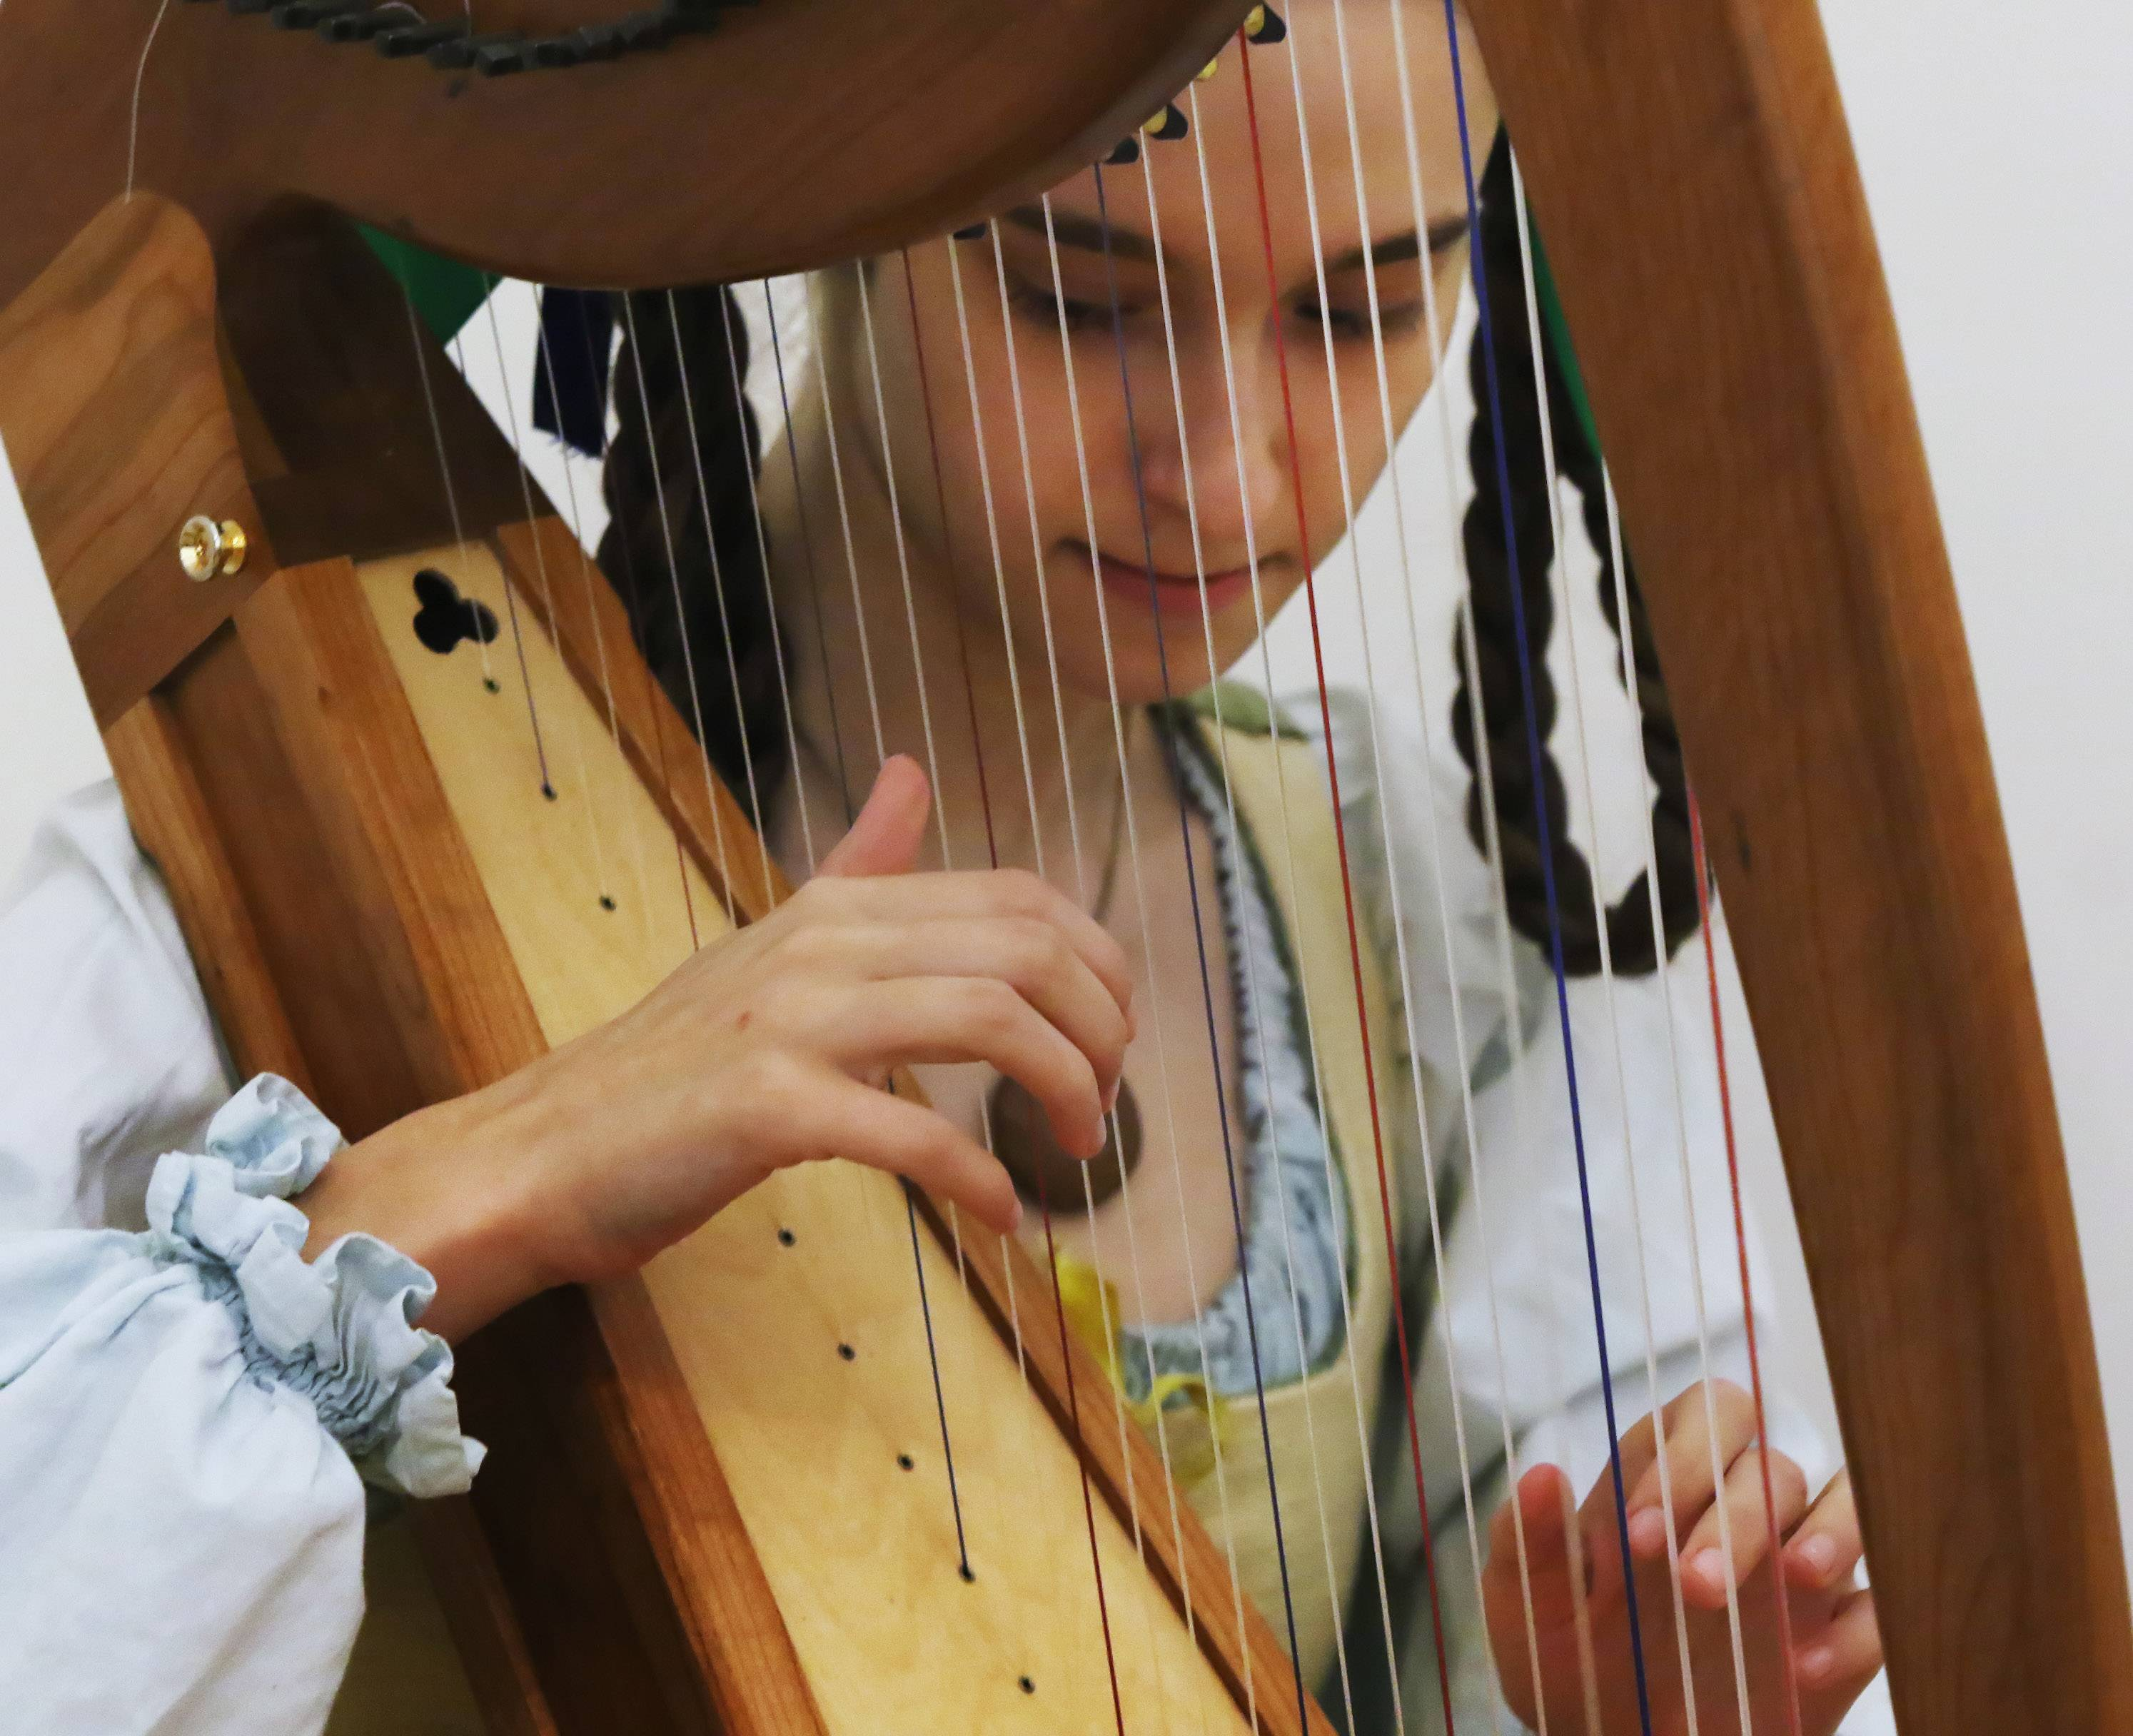 Elizabeth Bolthouse of Palatine plays the harp during the Elizabethan Faire on Sunday at the Lake County Discovery Museum near Wauconda. The museum worked with Bristol Renaissance Faire to celebrate the works of William Shakespeare and the 16th century England.